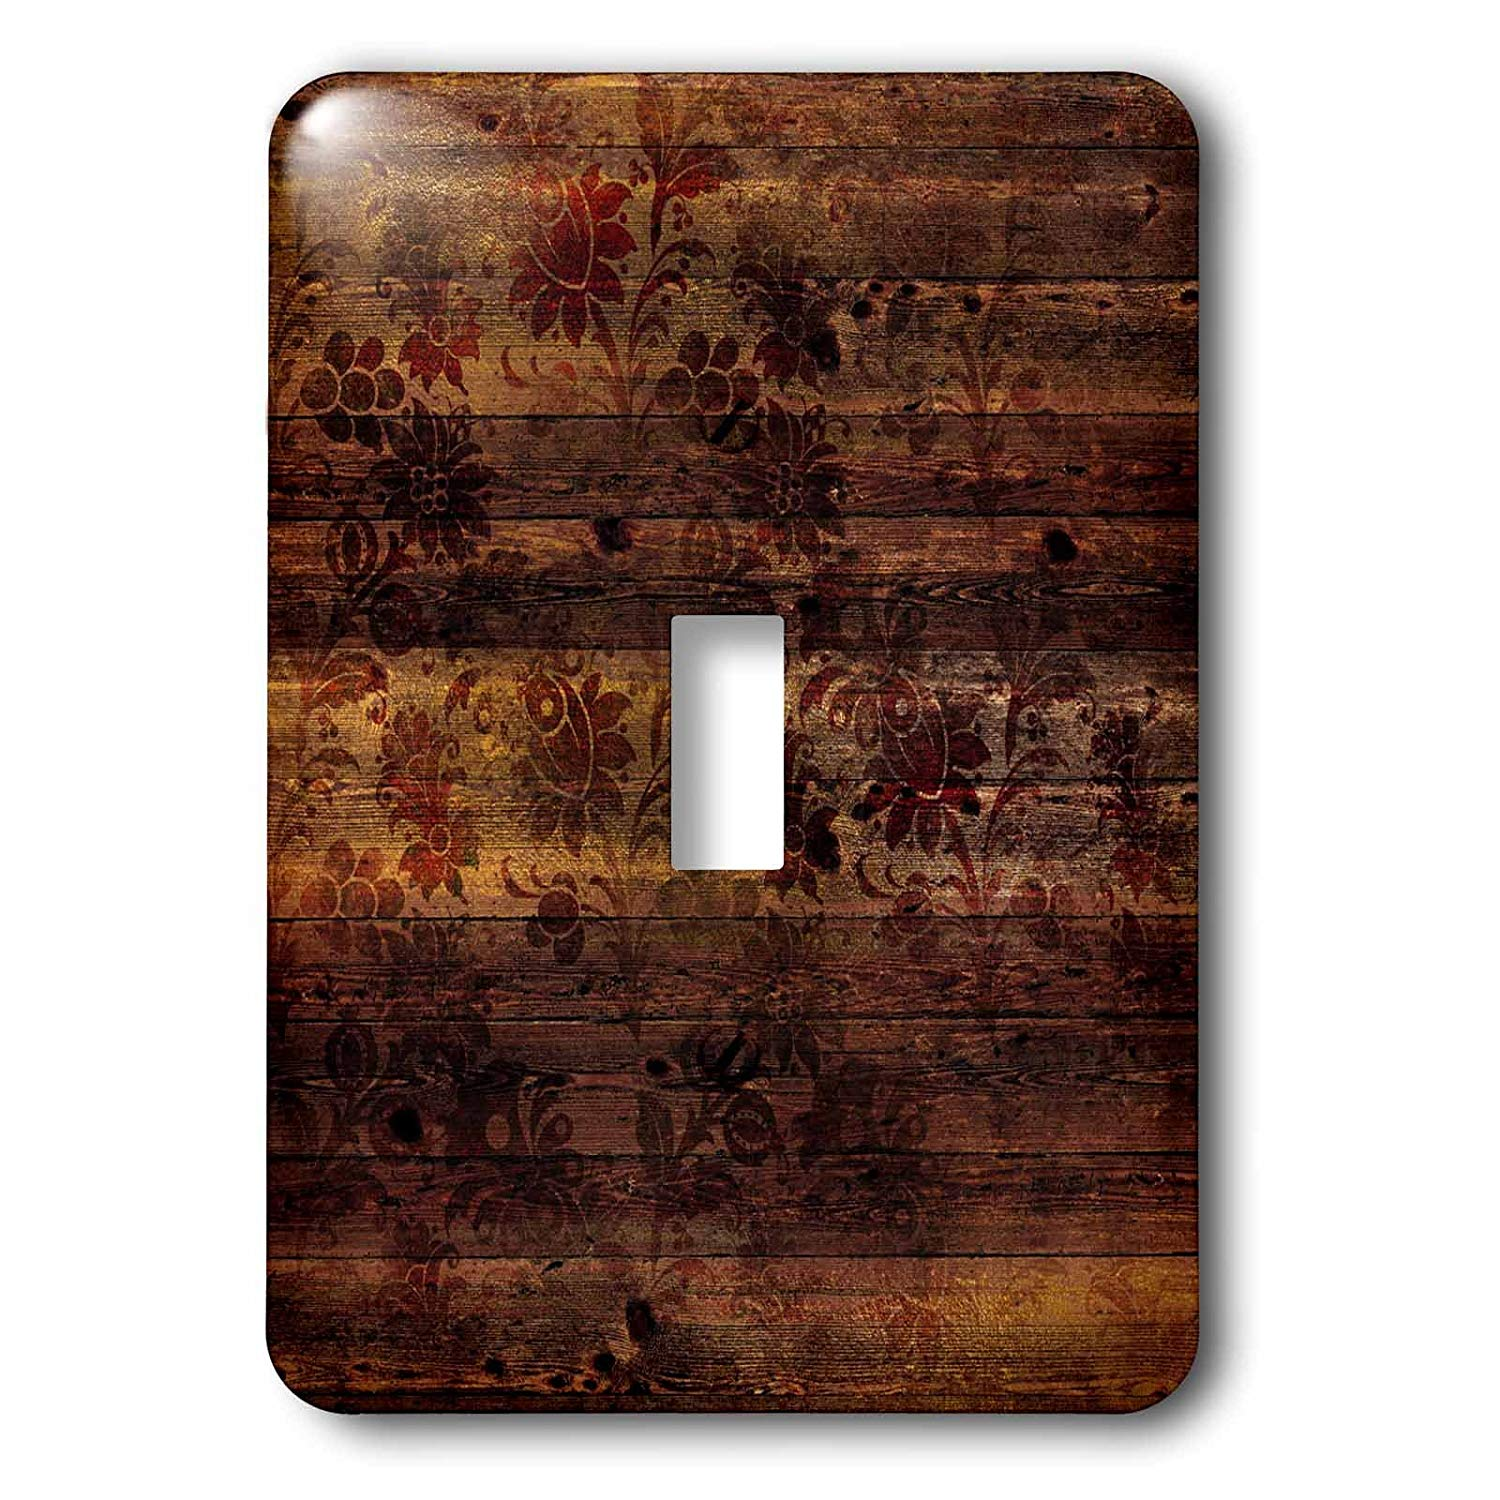 Cheap Wood Light Switch Covers Find Wood Light Switch Covers Deals